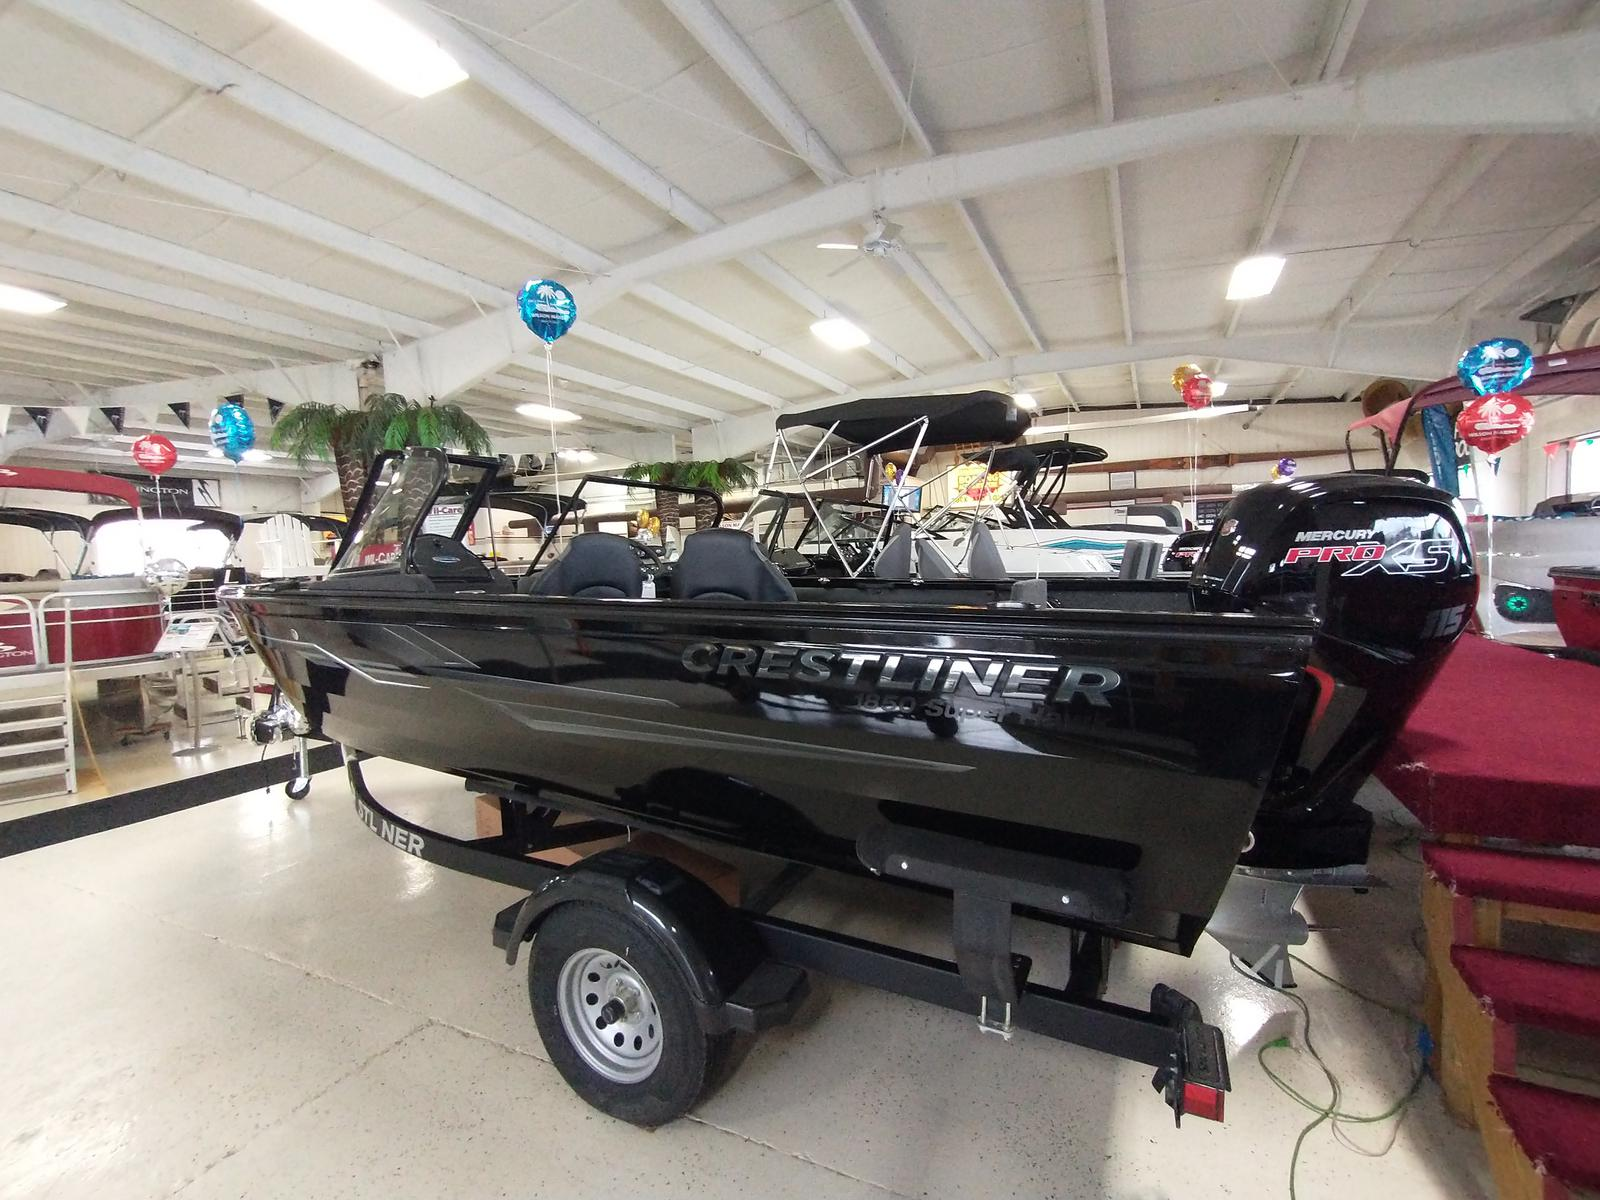 2021 Crestliner boat for sale, model of the boat is 1850 Super Hawk & Image # 2 of 30